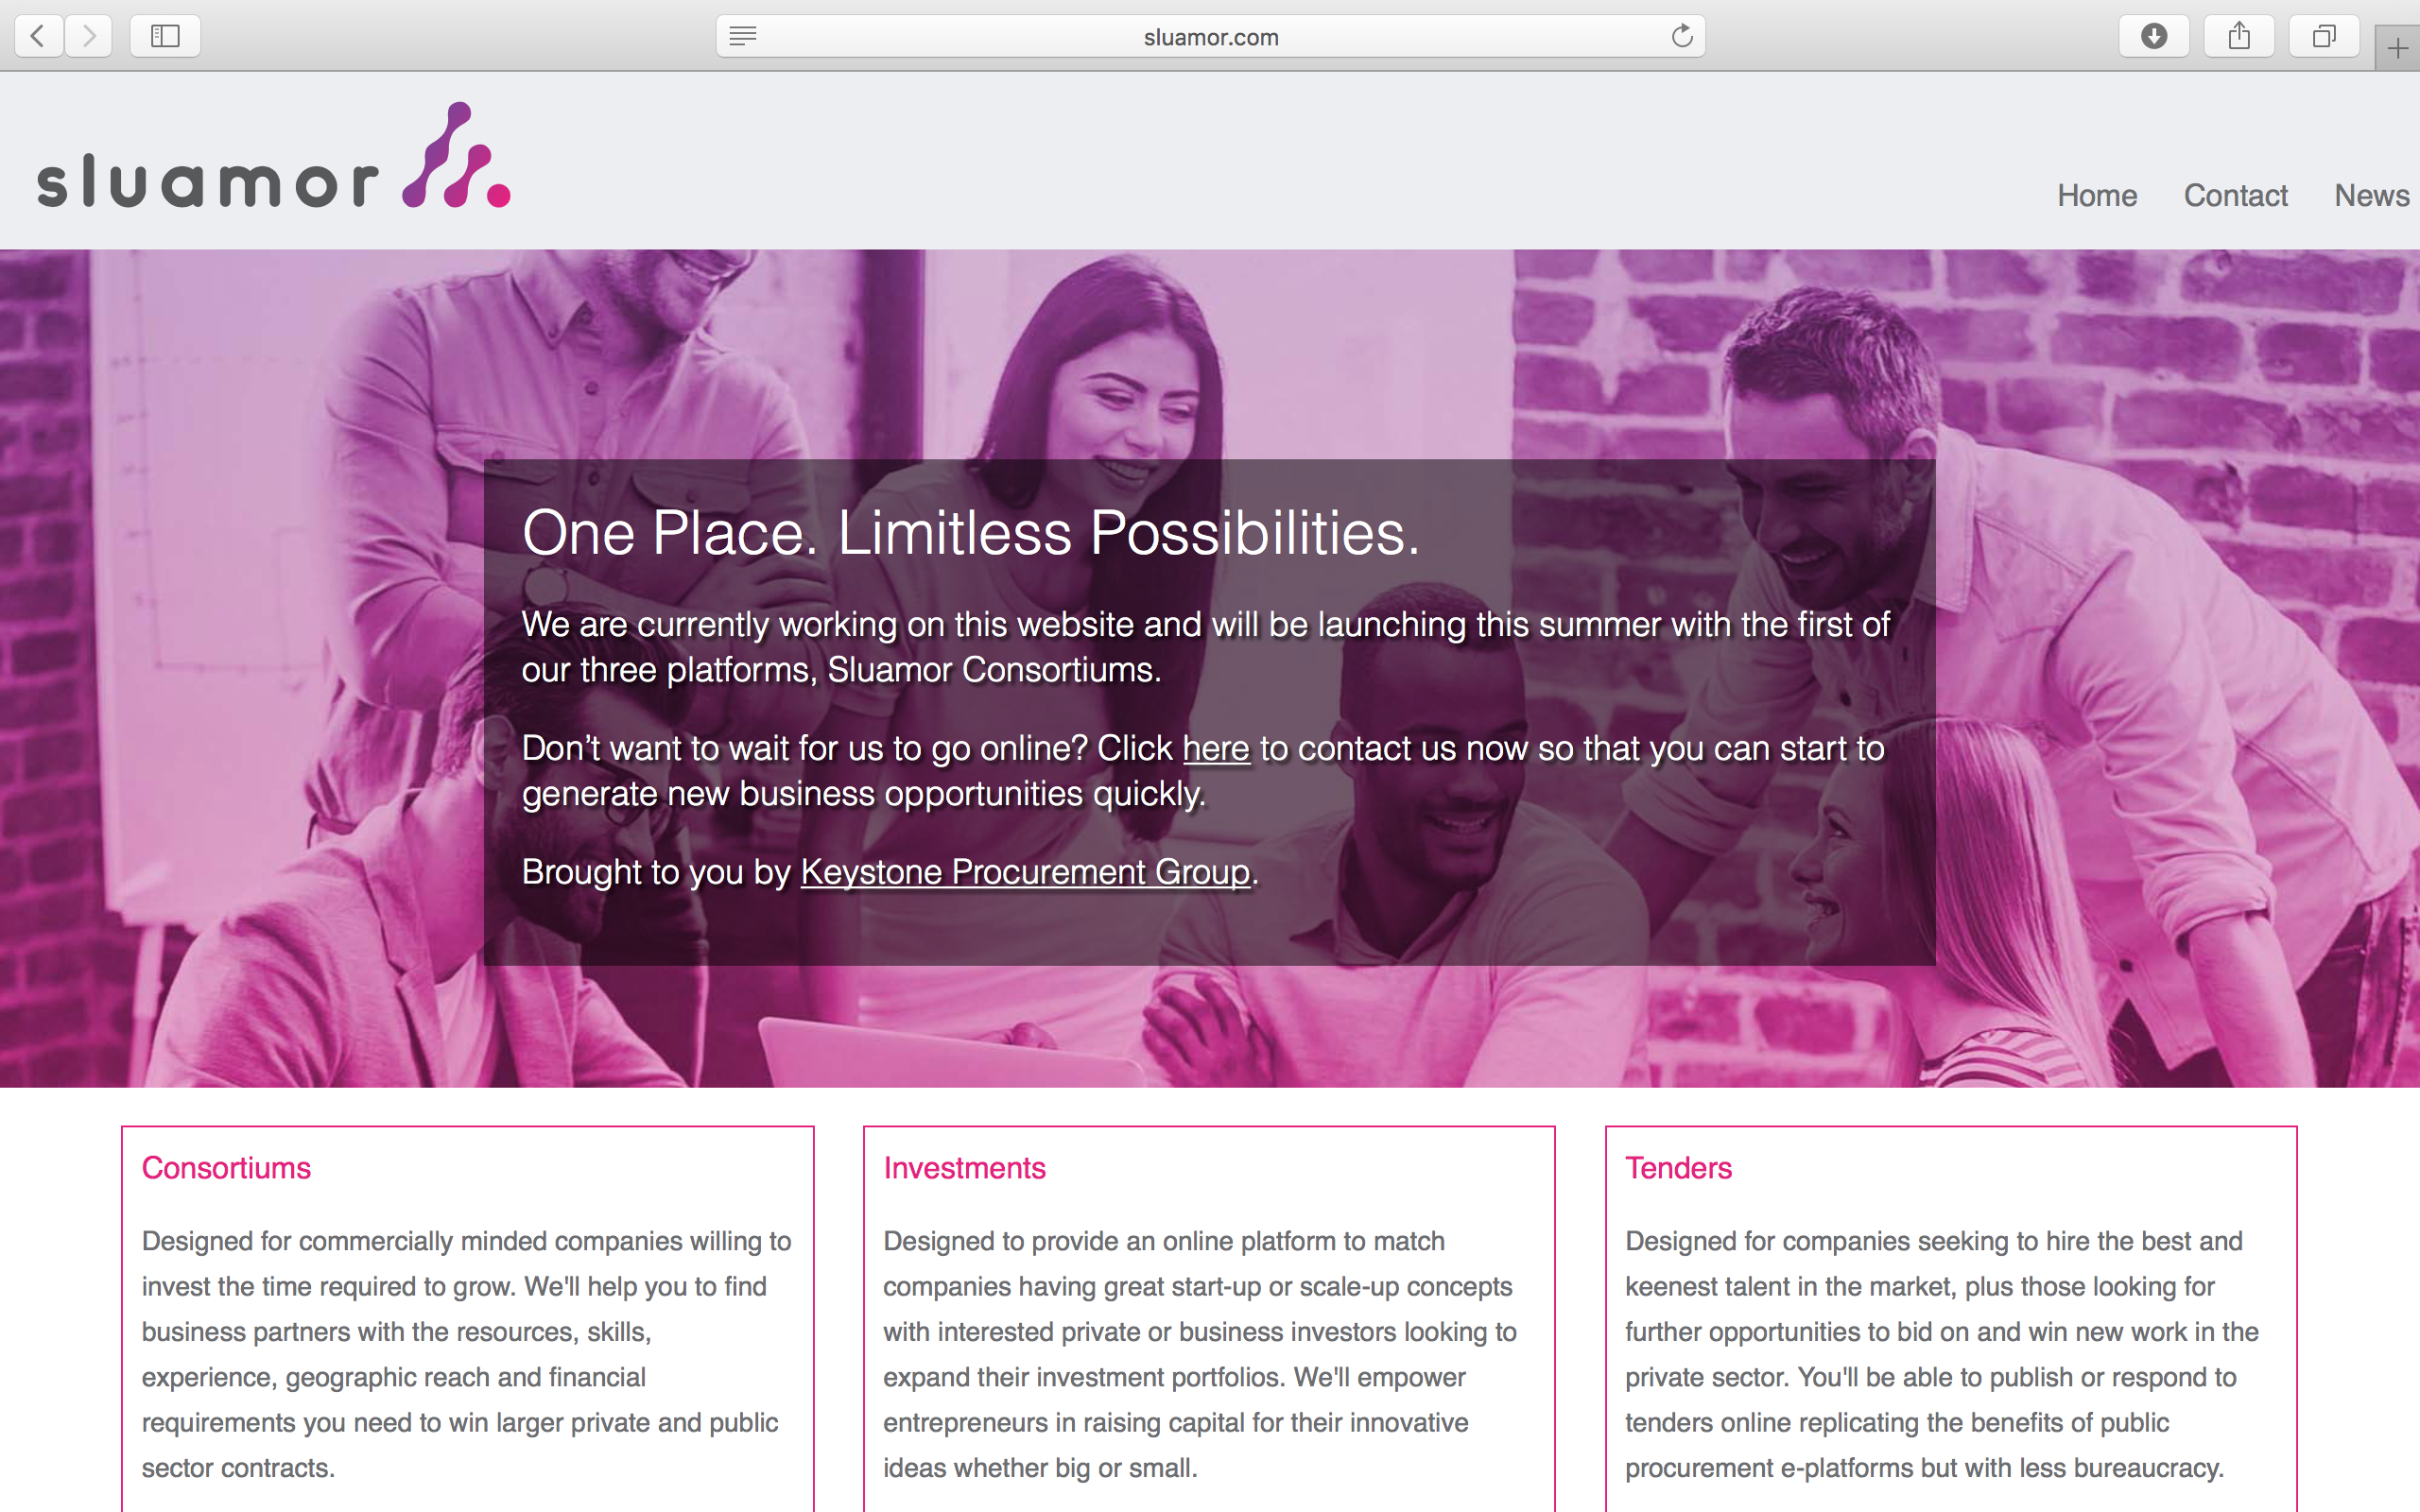 Introducing Sluamor – One Place. Limitless Possibilities